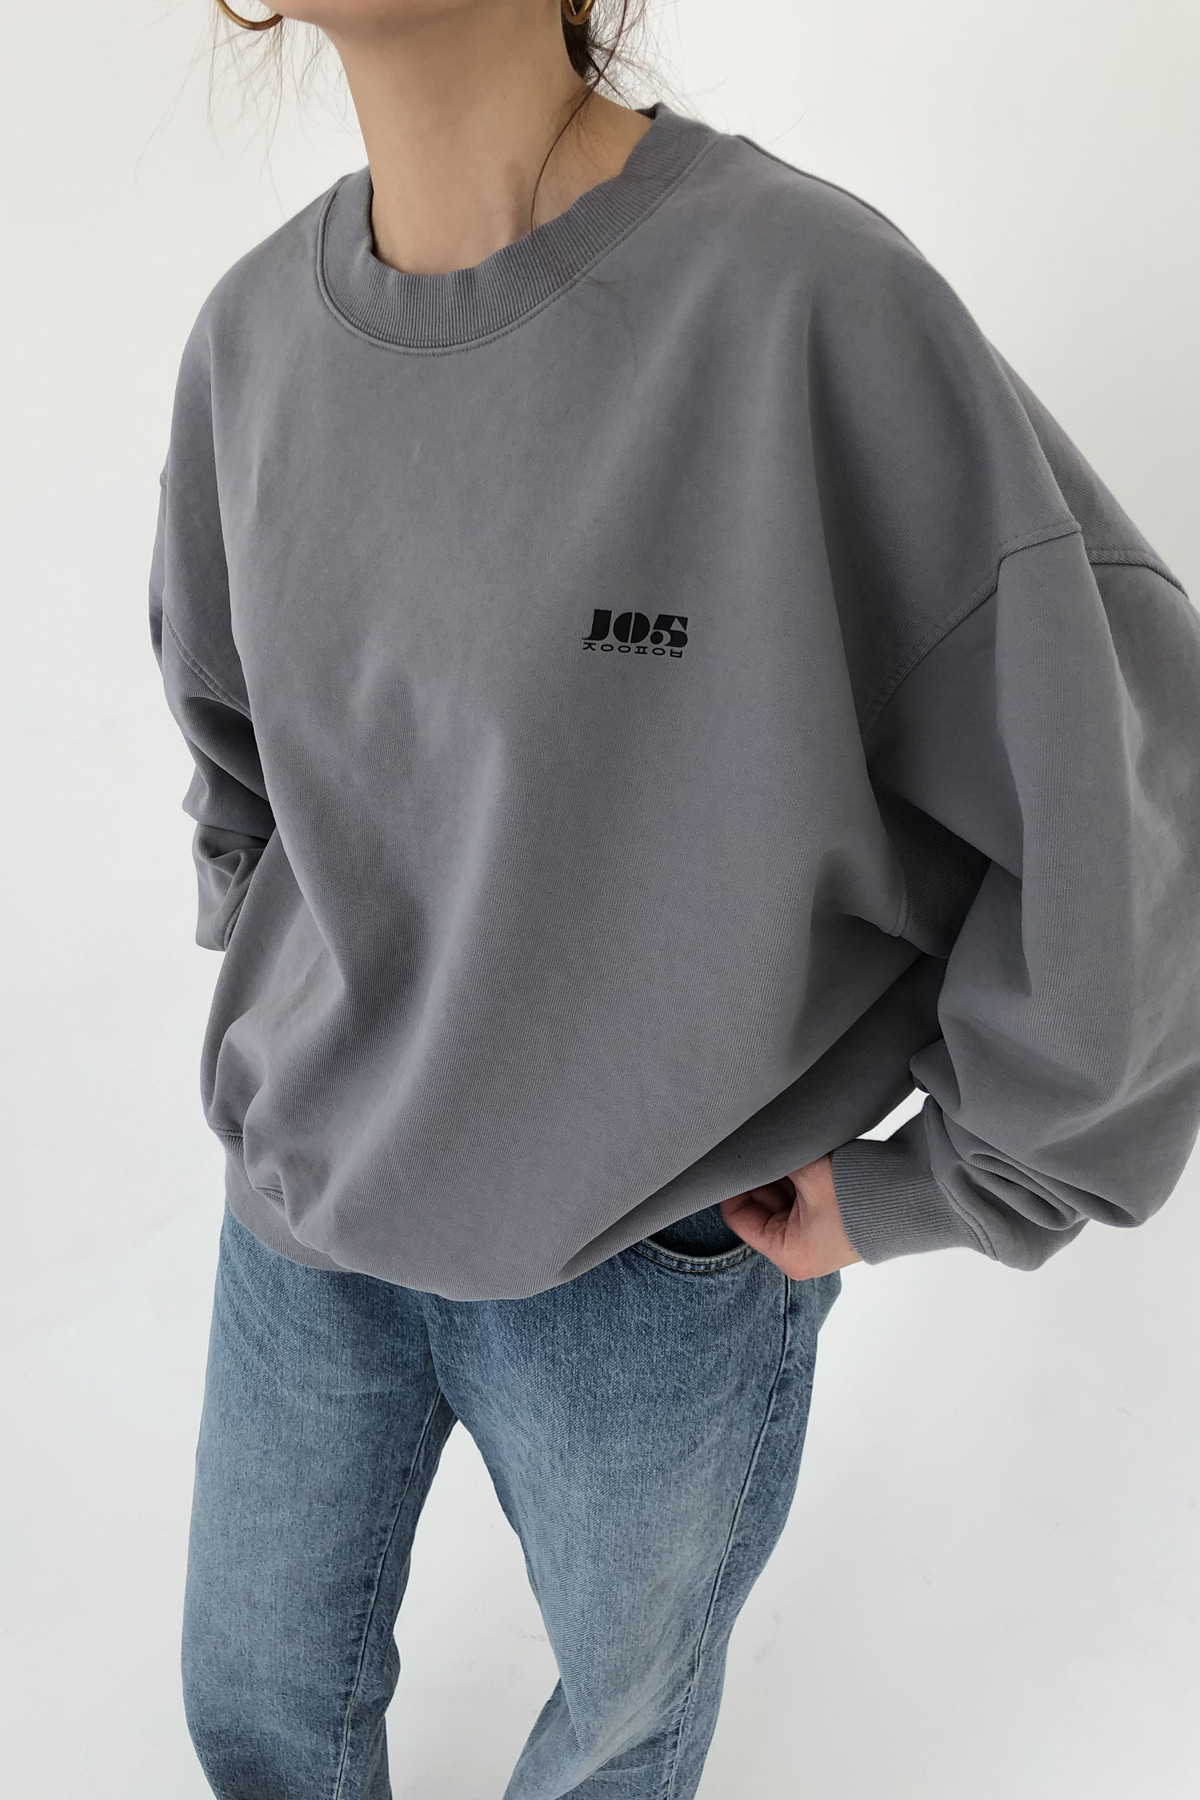 20% MID SEASON SALE [19SS] BOY MTM _ GREY